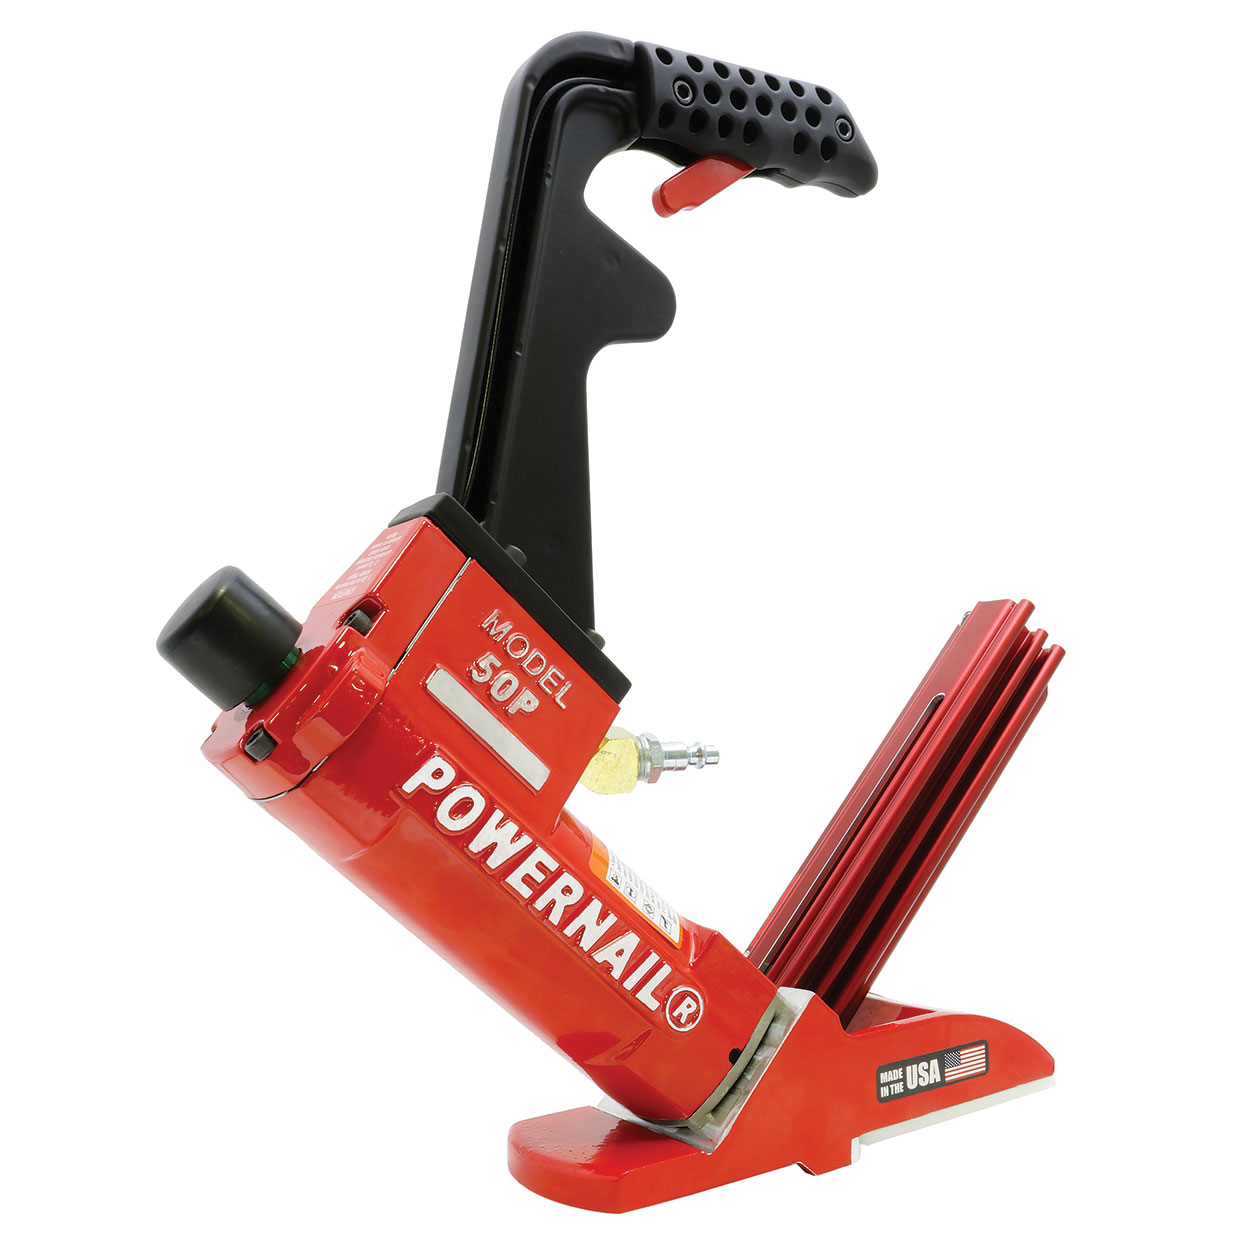 Powernail Model 50P 18 Gauge Flooring Nailer - Hardwood Flooring